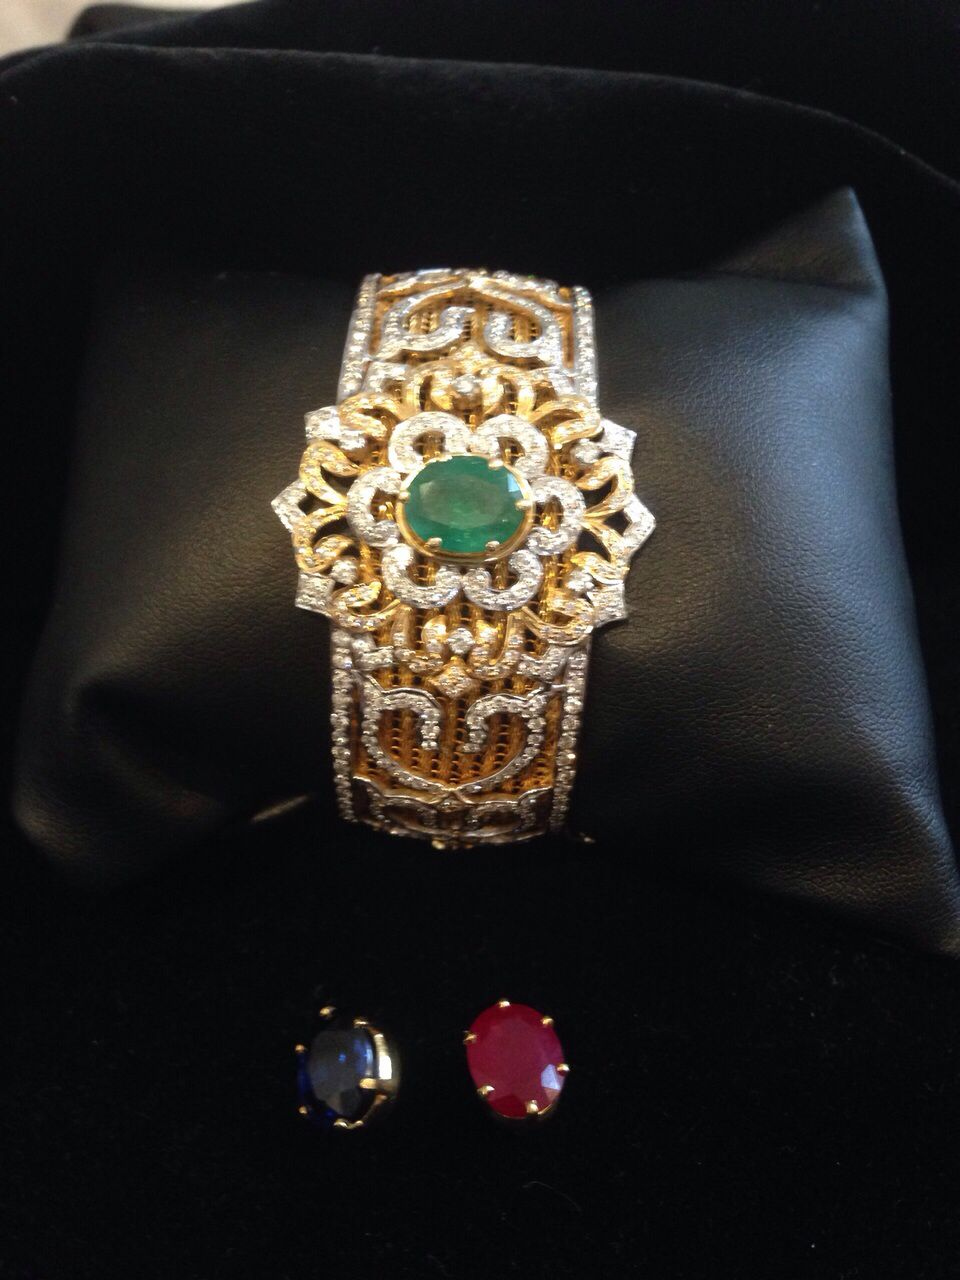 Stunning Bracelet in 18 kt gol with changeable precious stones Avialable now price and details on request